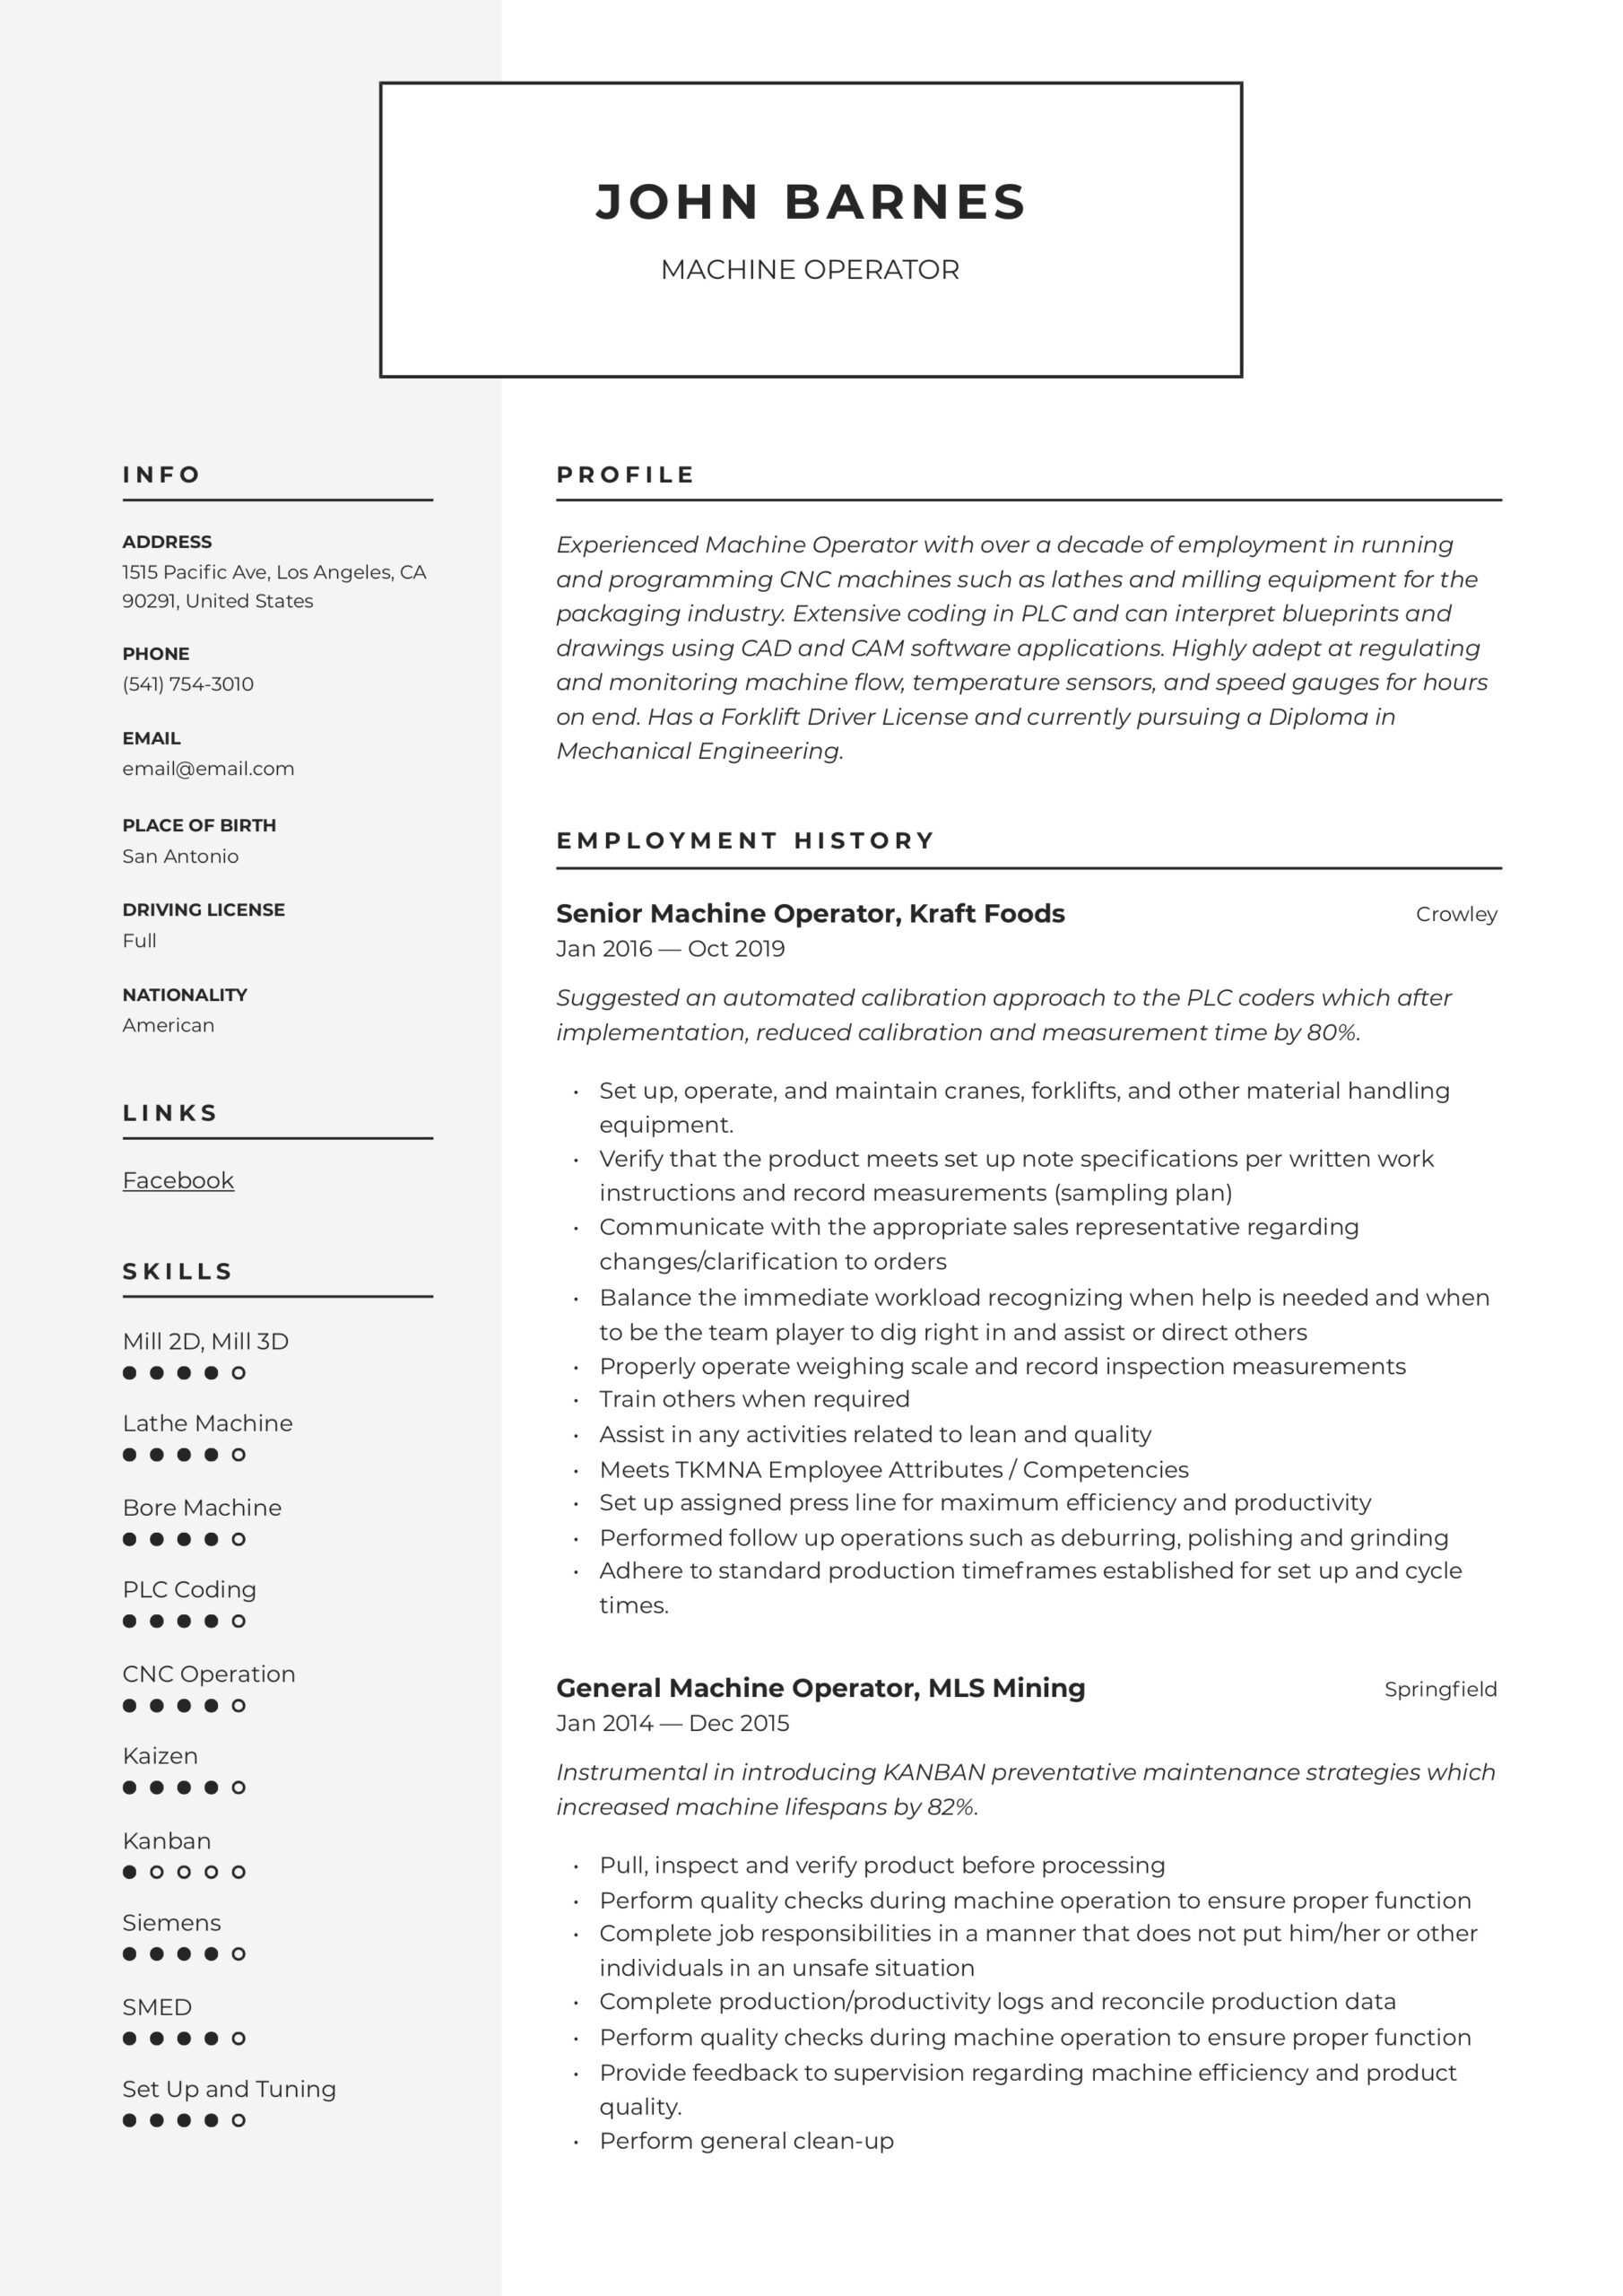 machine operator resume writing guide templates sample for position modern template Resume Sample Resume For Machine Operator Position